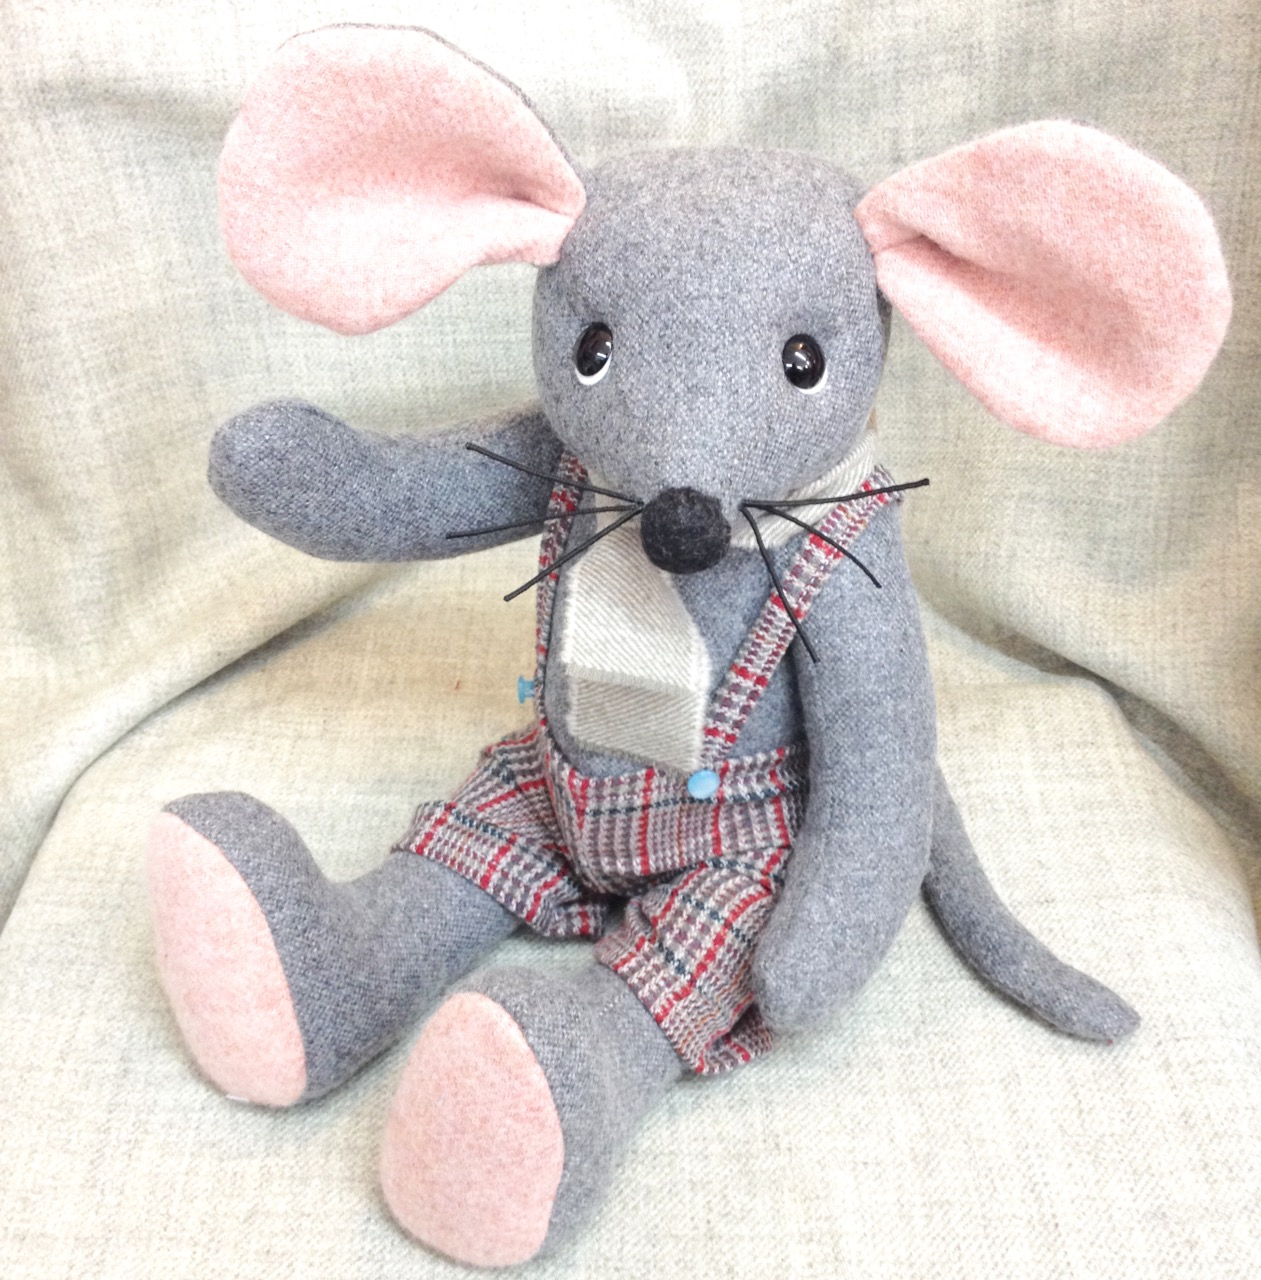 OOAK artist collectible mouse Maximus.